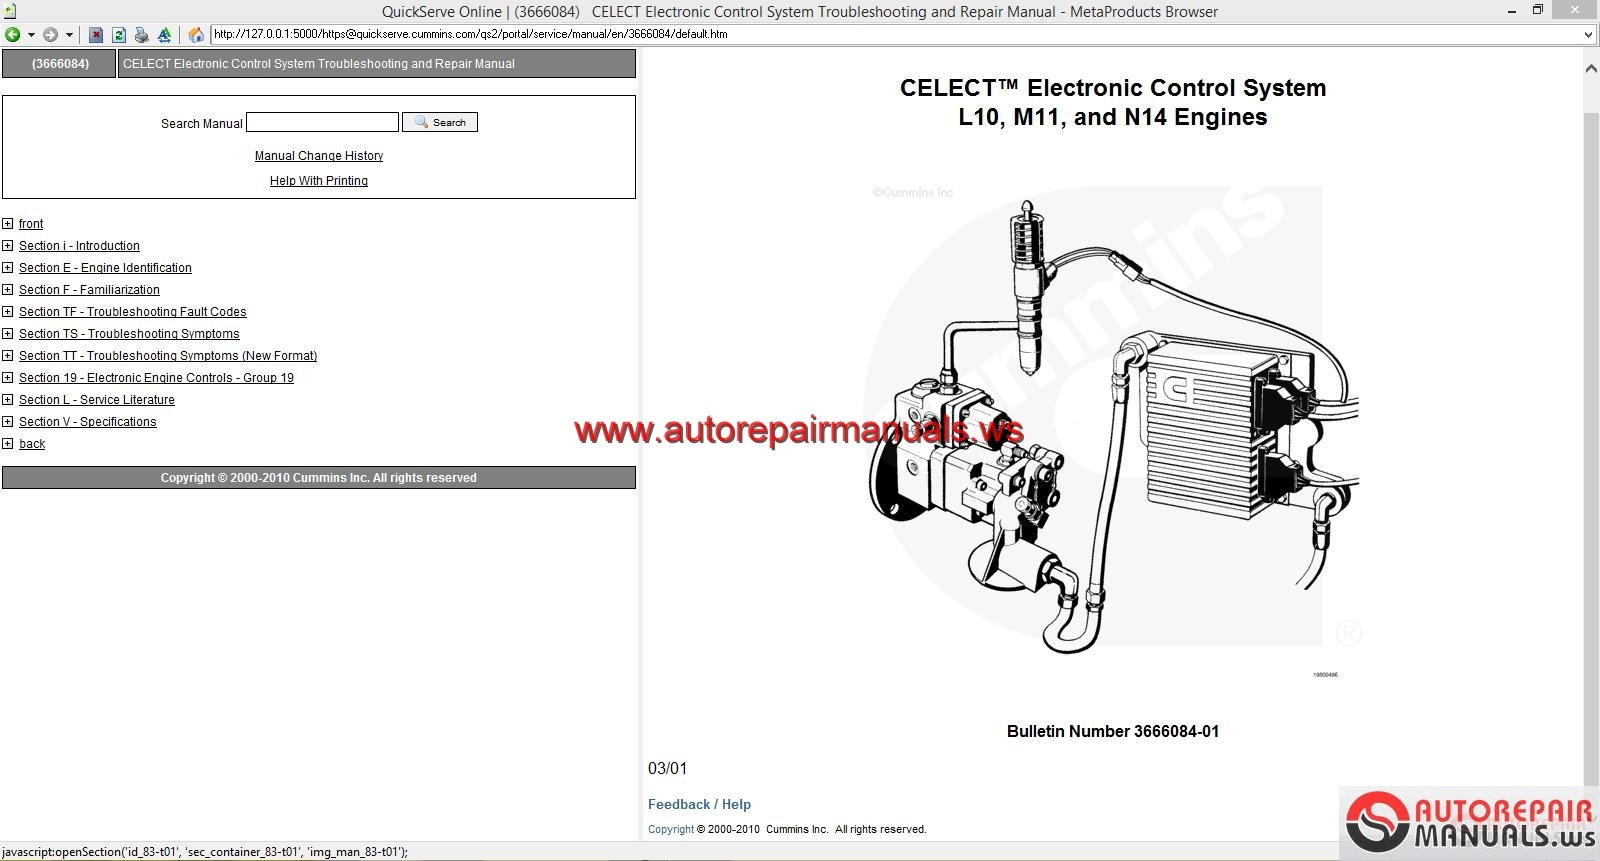 Keygen Autorepairmanuals Cummins Celect Electronic